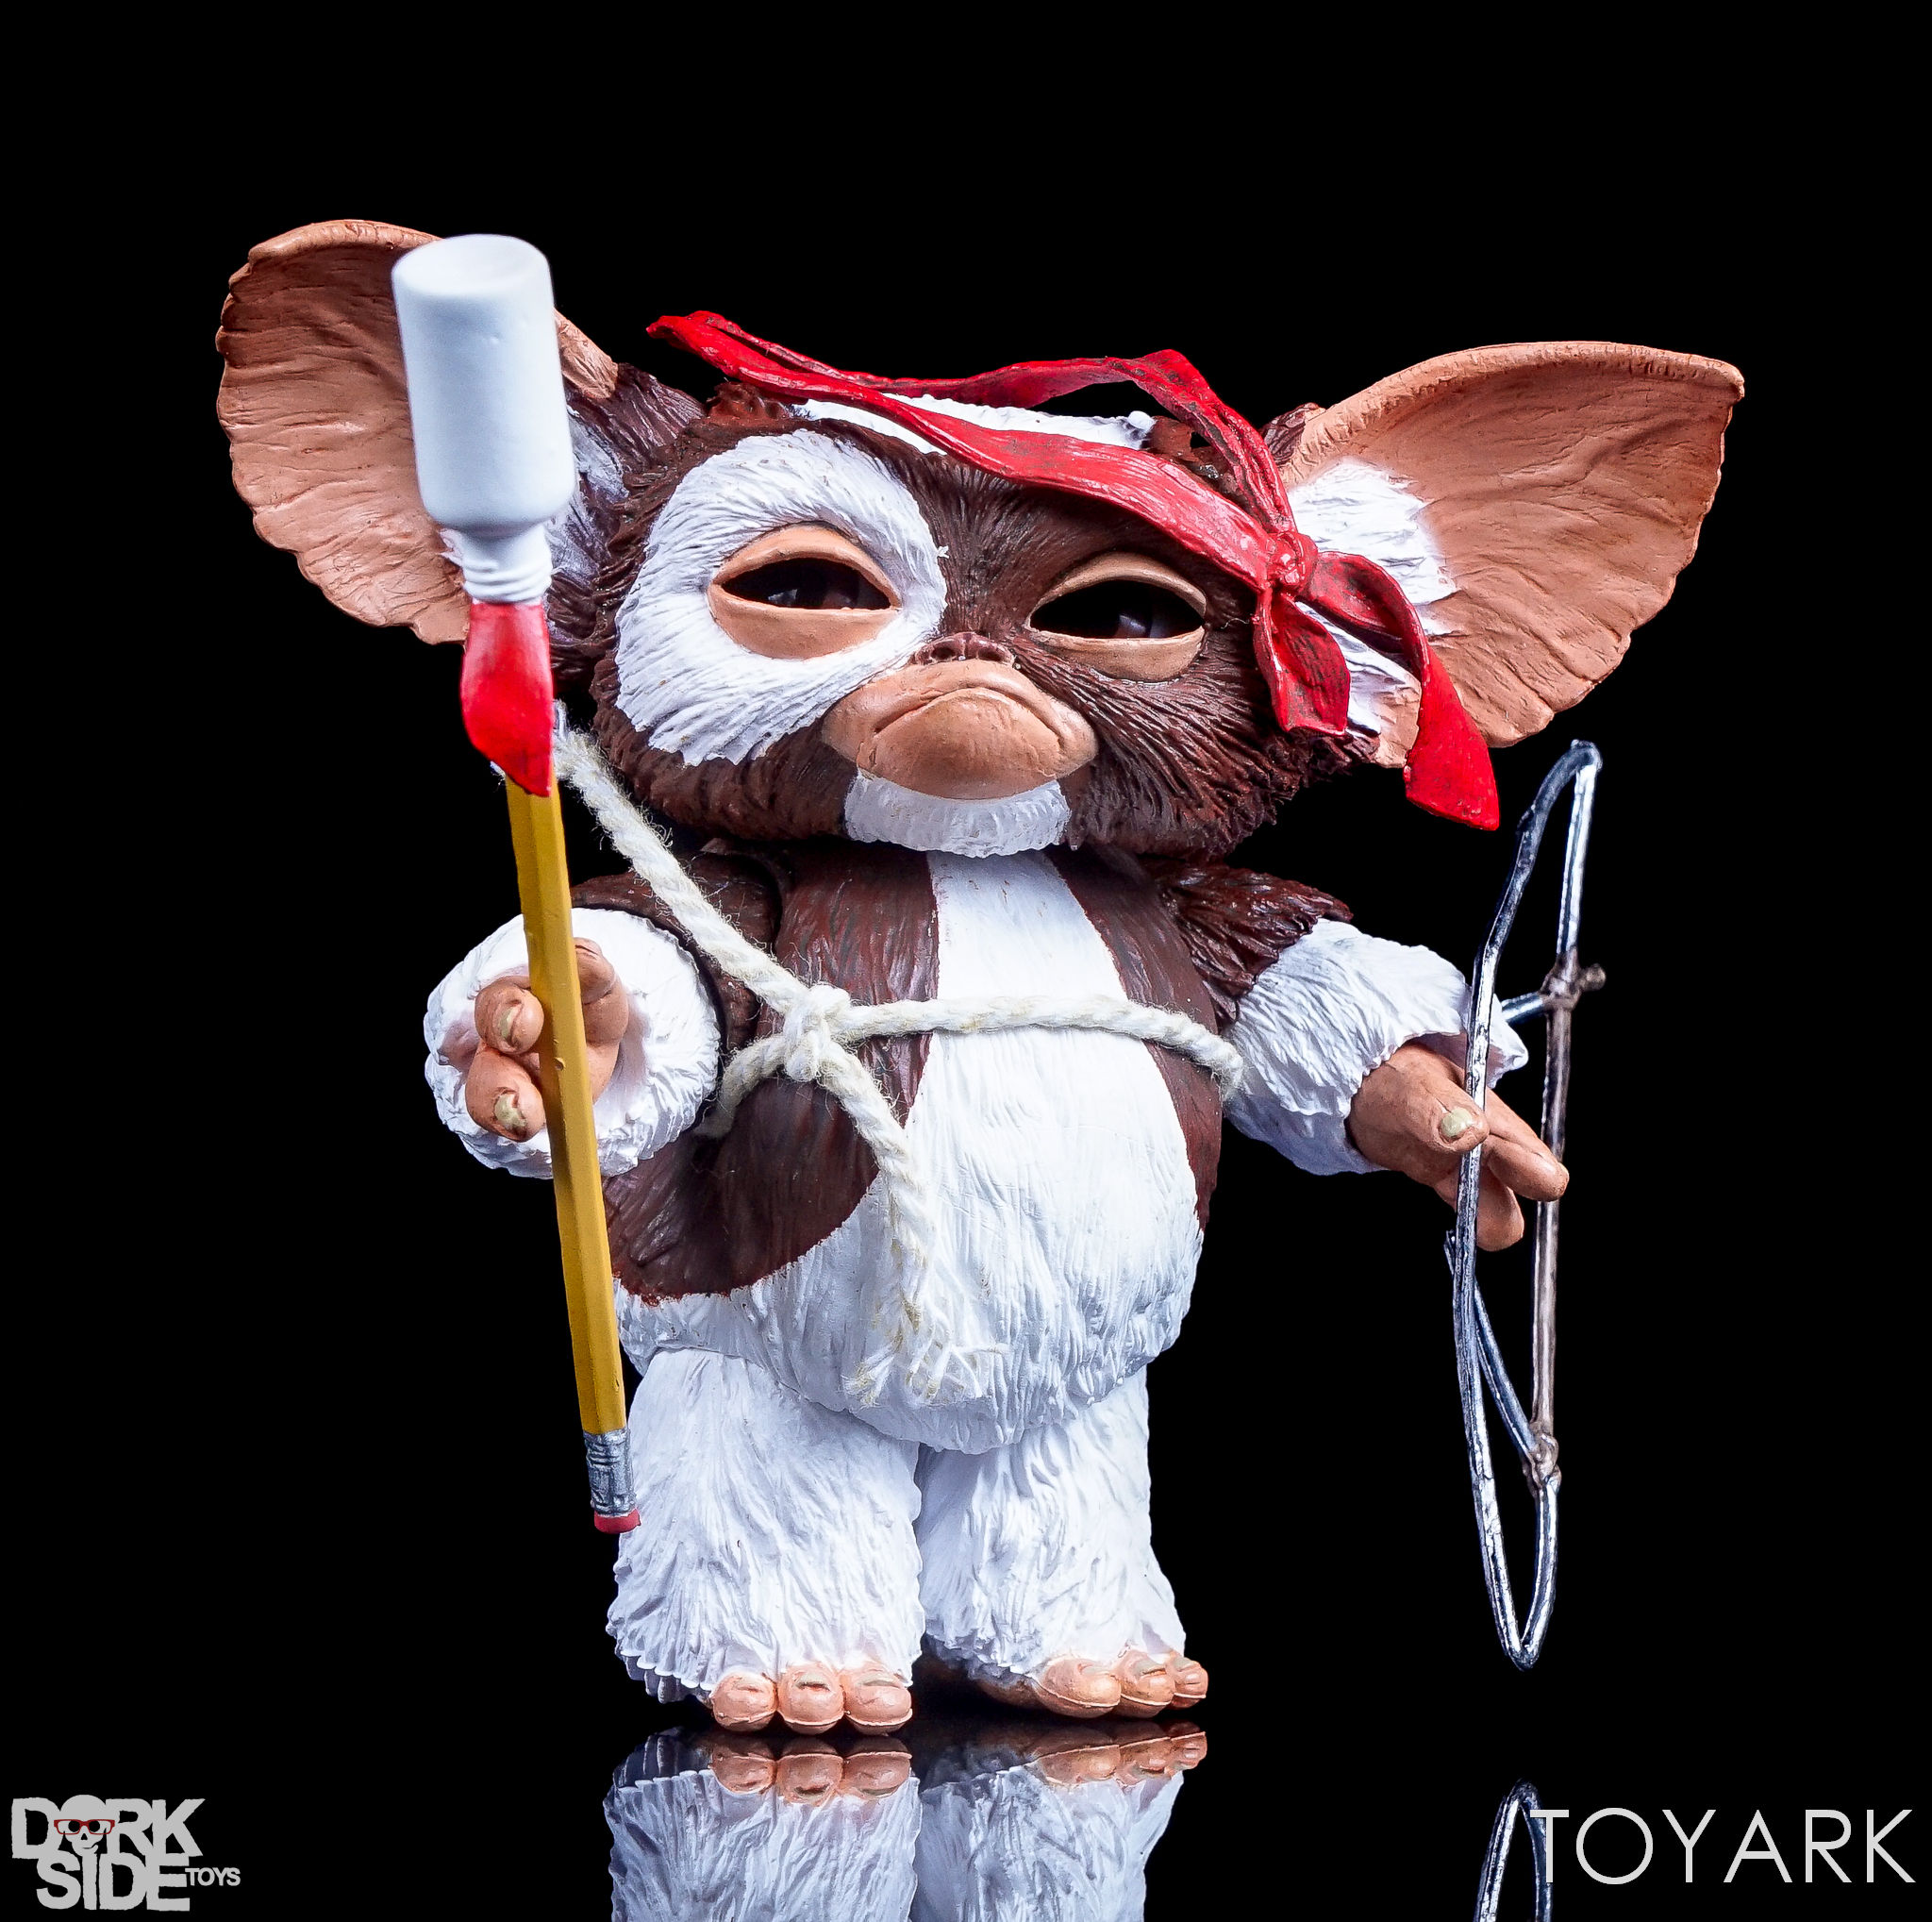 http://news.toyark.com/wp-content/uploads/sites/4/2017/04/NECA-Gremlins-Ultimate-Gizmo-012.jpg